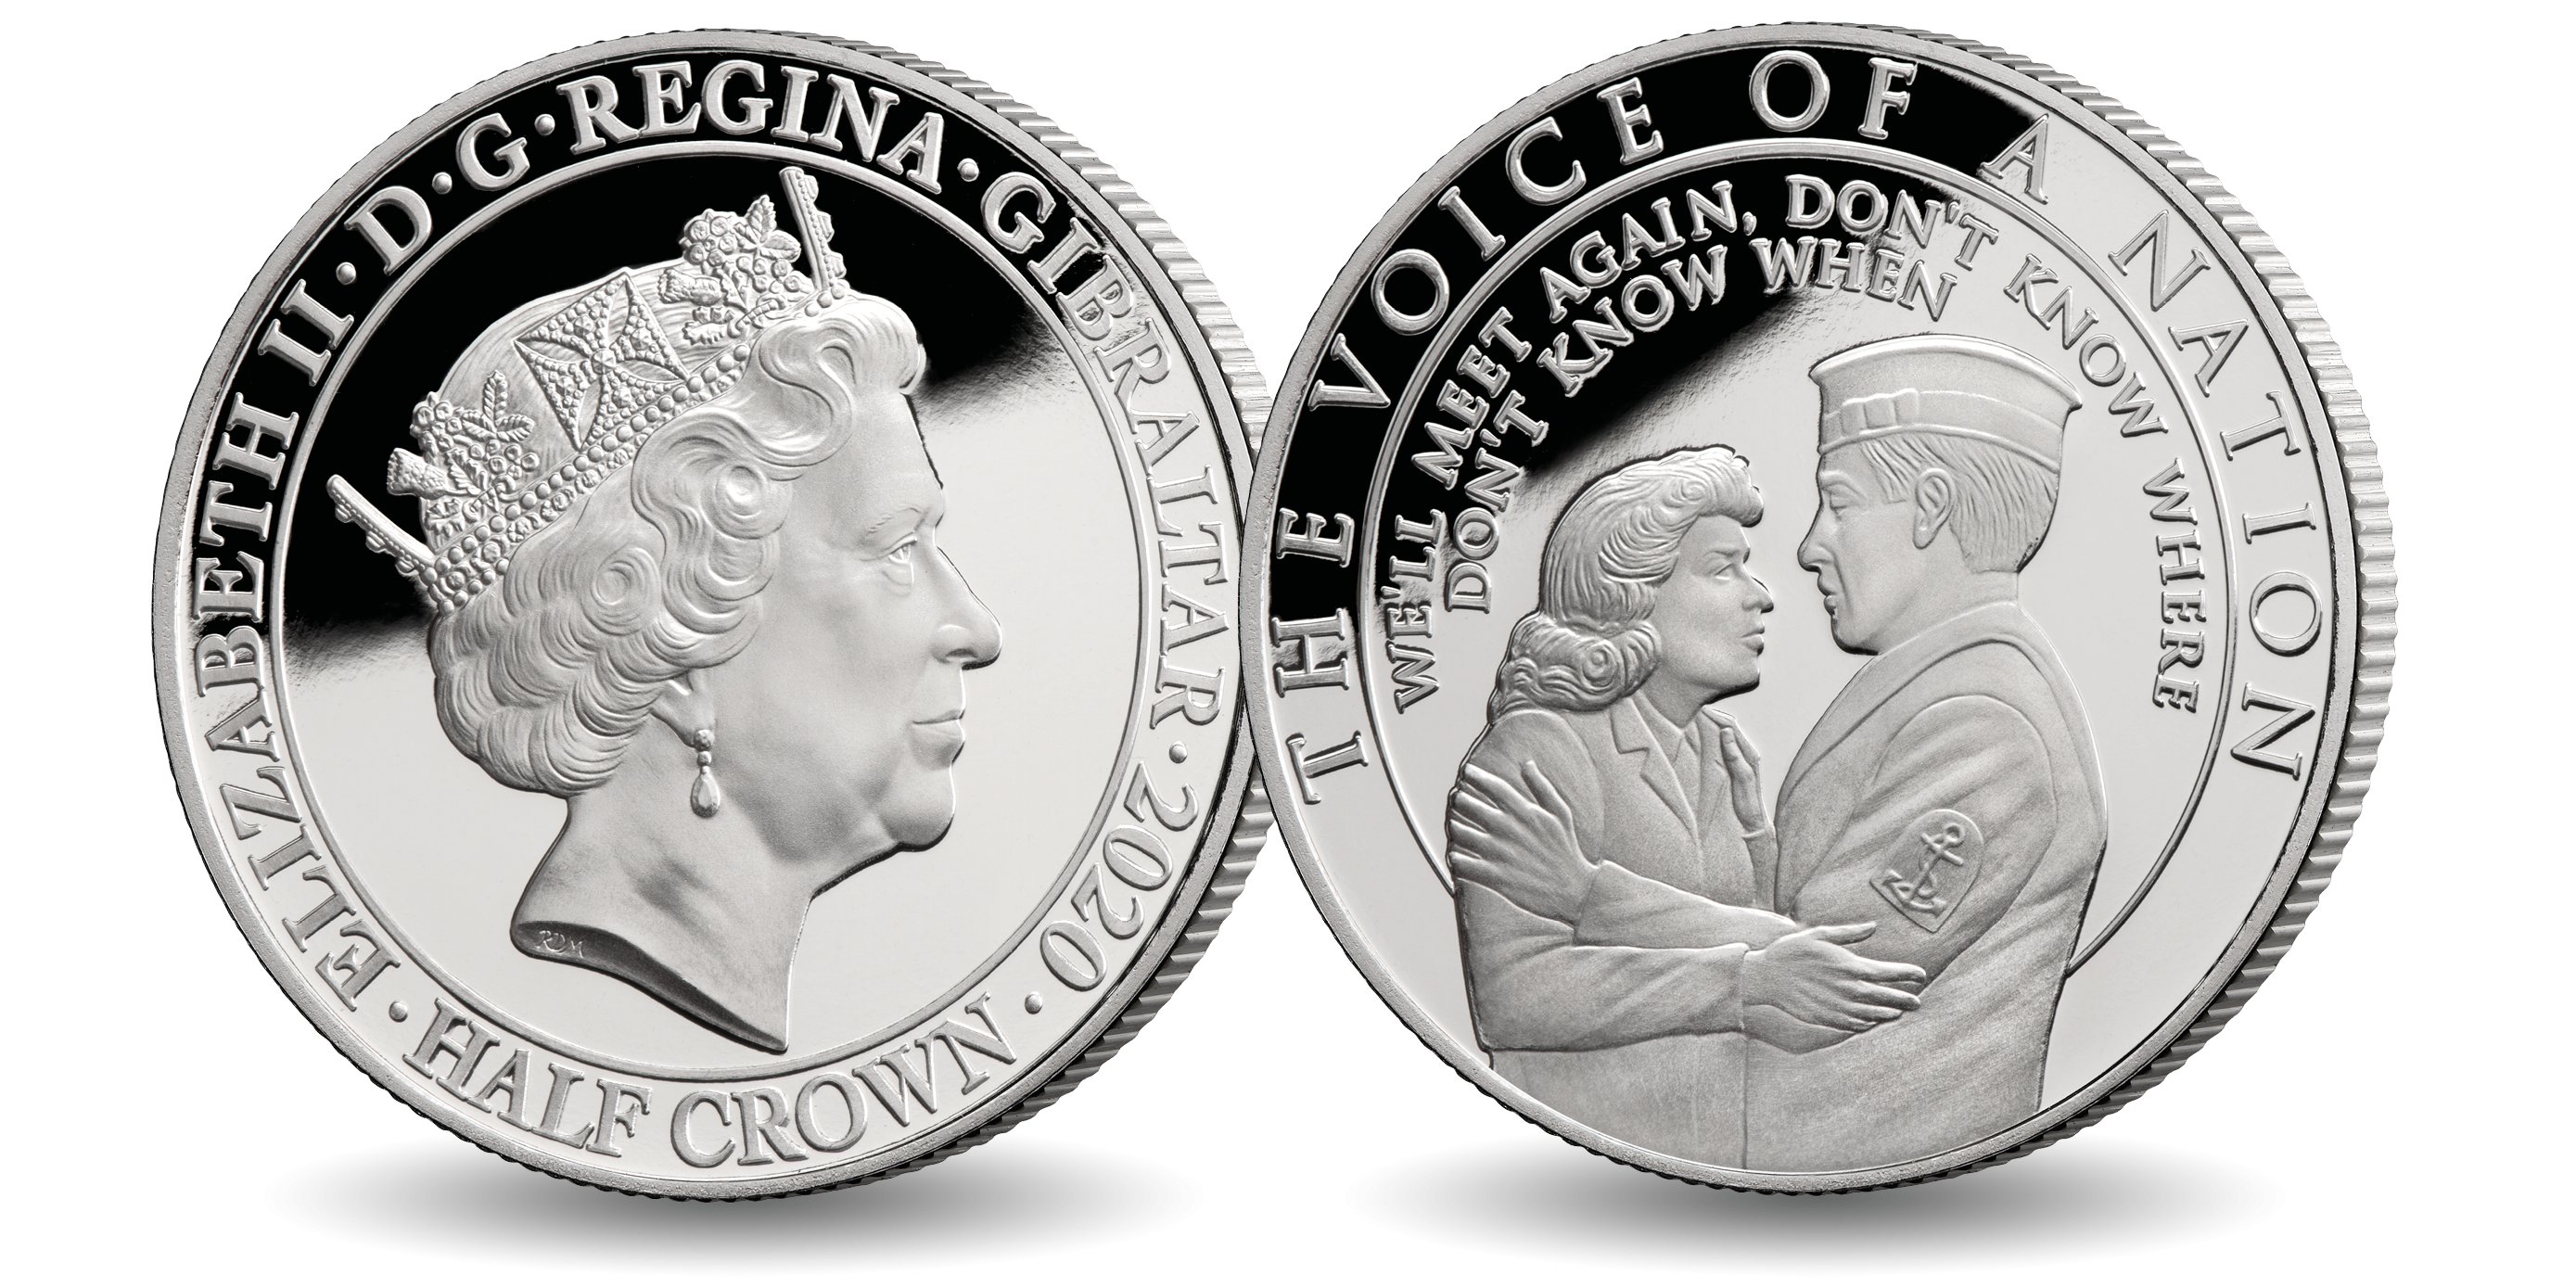 Coin features Dame Vera Lynn embracing a solider surrounded by the famous words from her well known song 'We'll meet again don't know where, don't know when